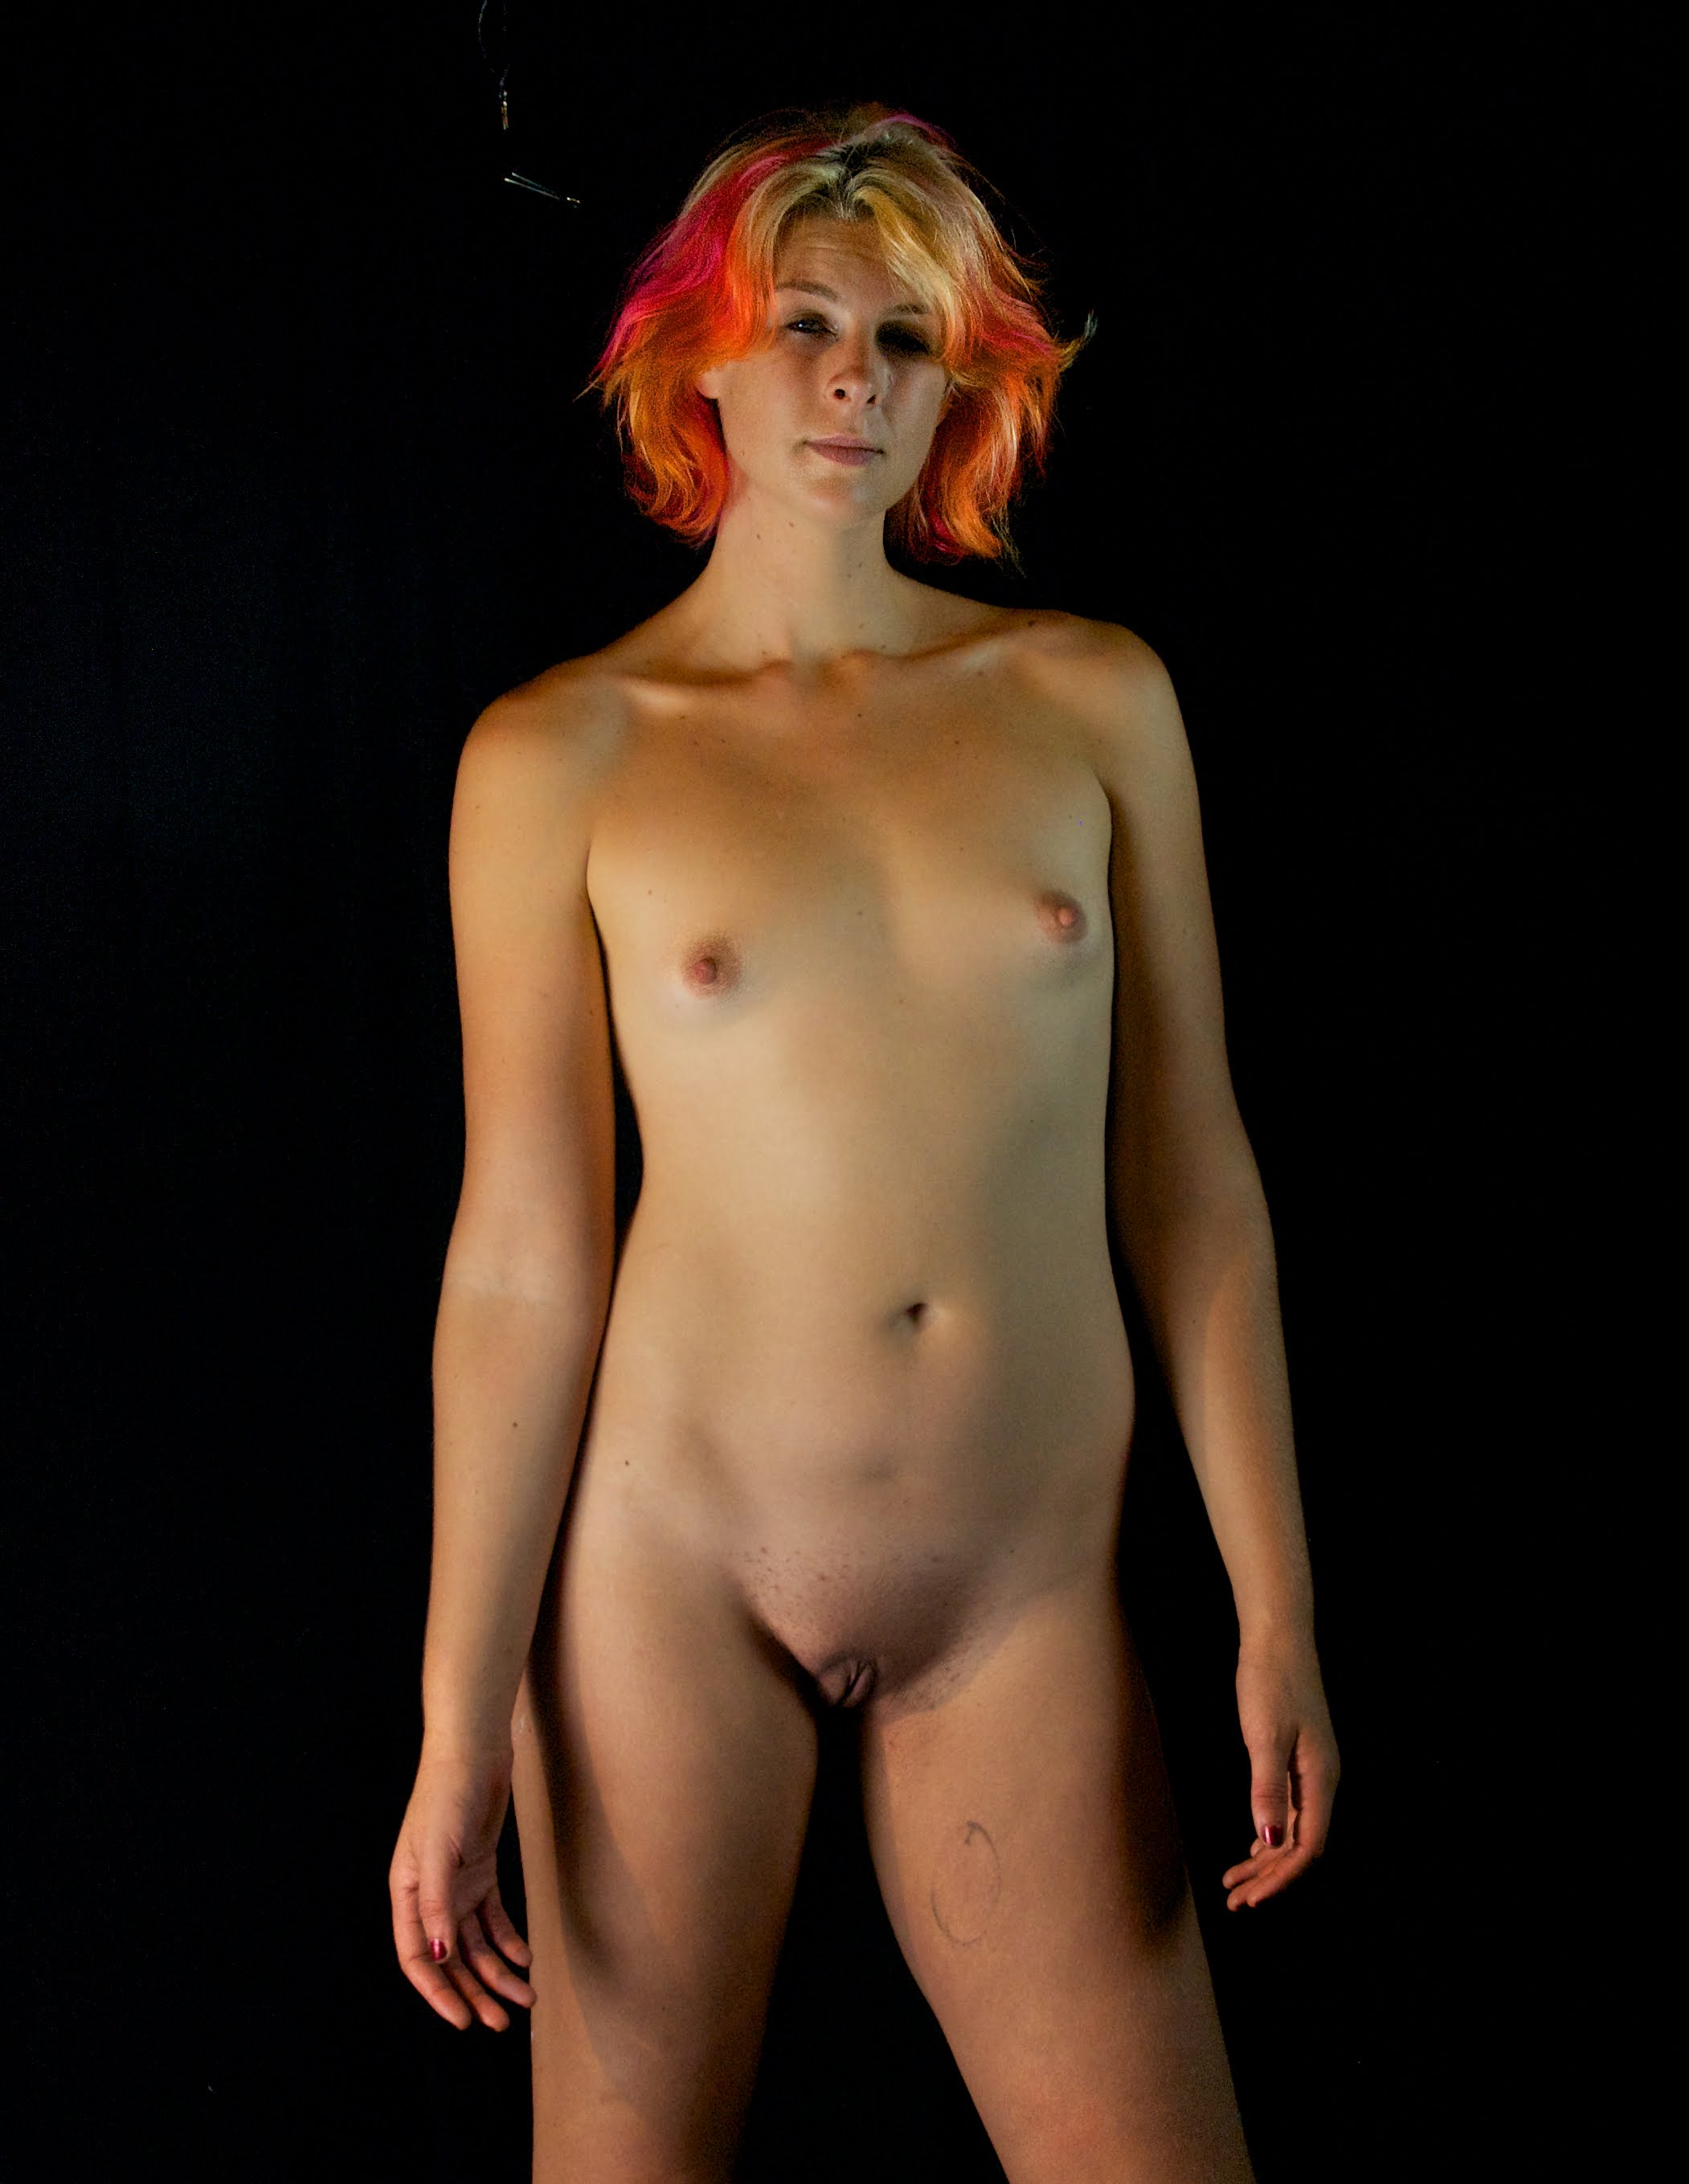 Tall nude woman with rainbow hair